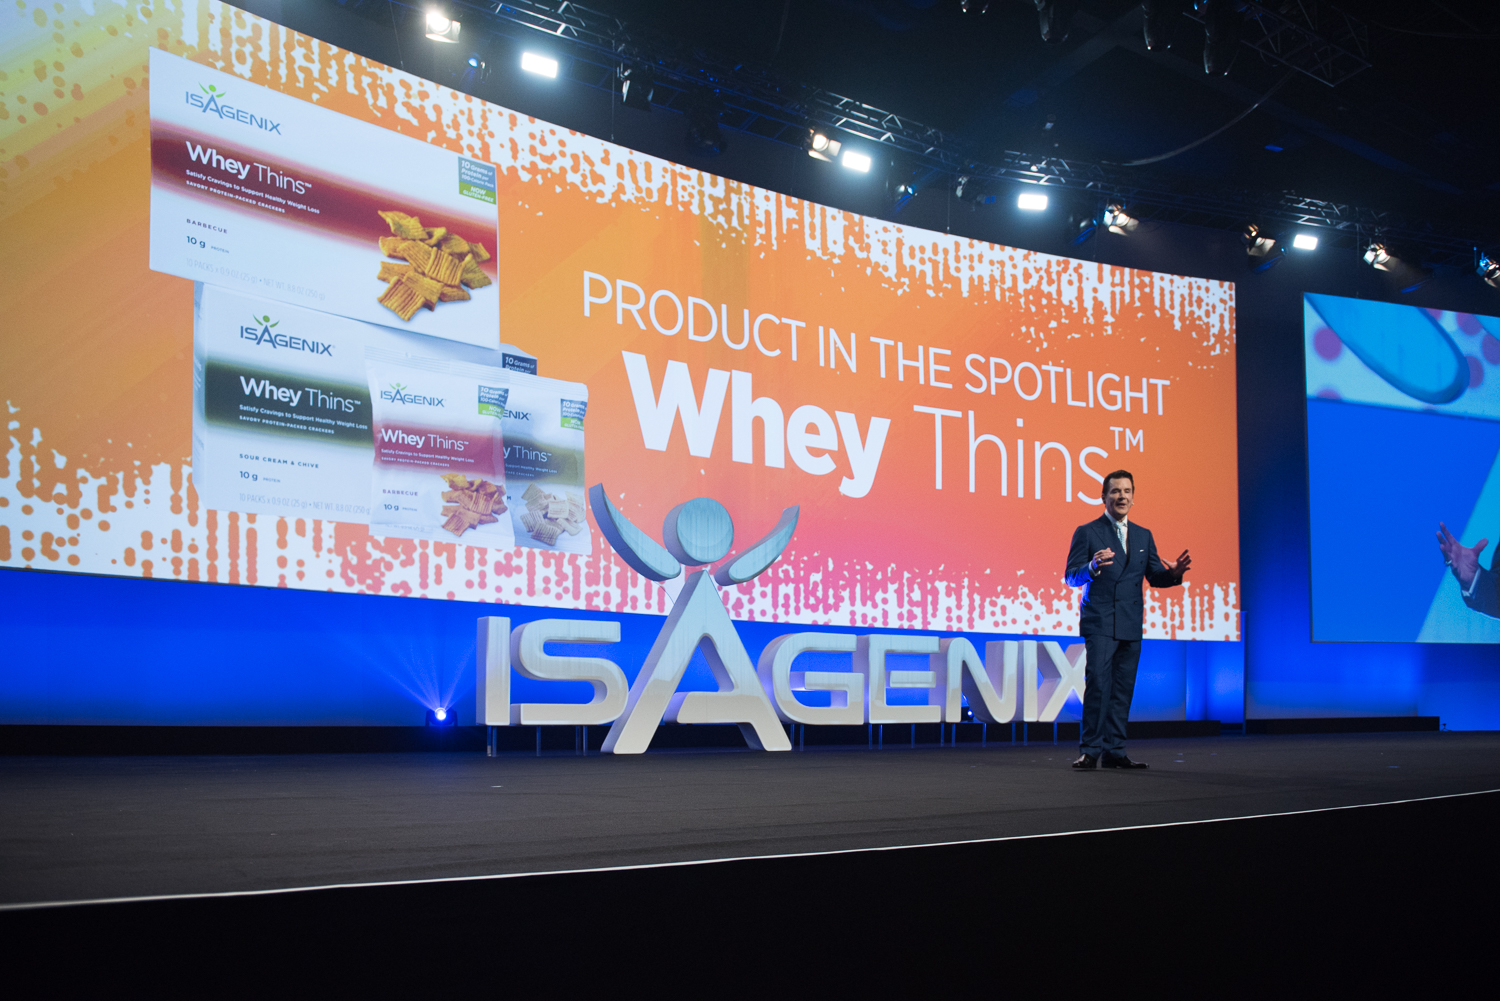 Jim Coover, Co-Founder and Chief Executive Officer, Launches Whey Thins White Cheddar from Stage at NYKO 2017